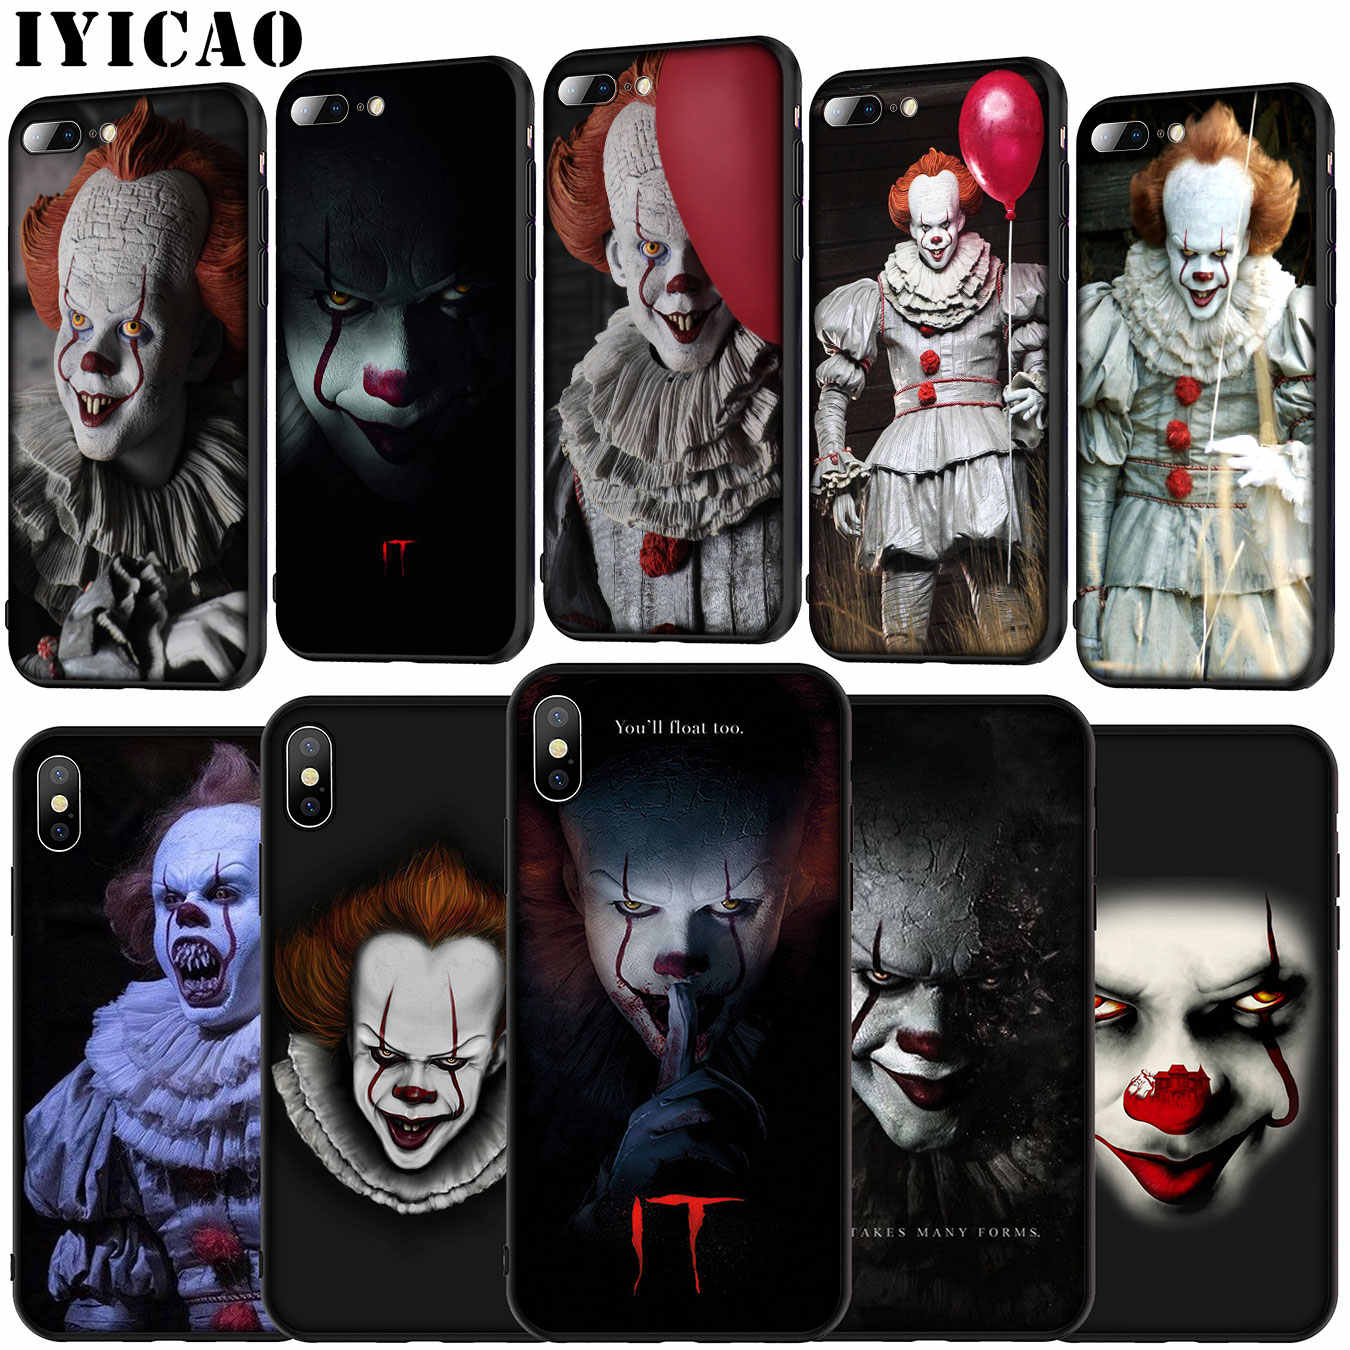 Iyicao De Film Het Pennywise Soft Silicone Cover Case Voor Iphone 11 Pro Xr X Xs Max 6 6S 7 8 Plus 5 5S Se Zwart Tpu Telefoon Case